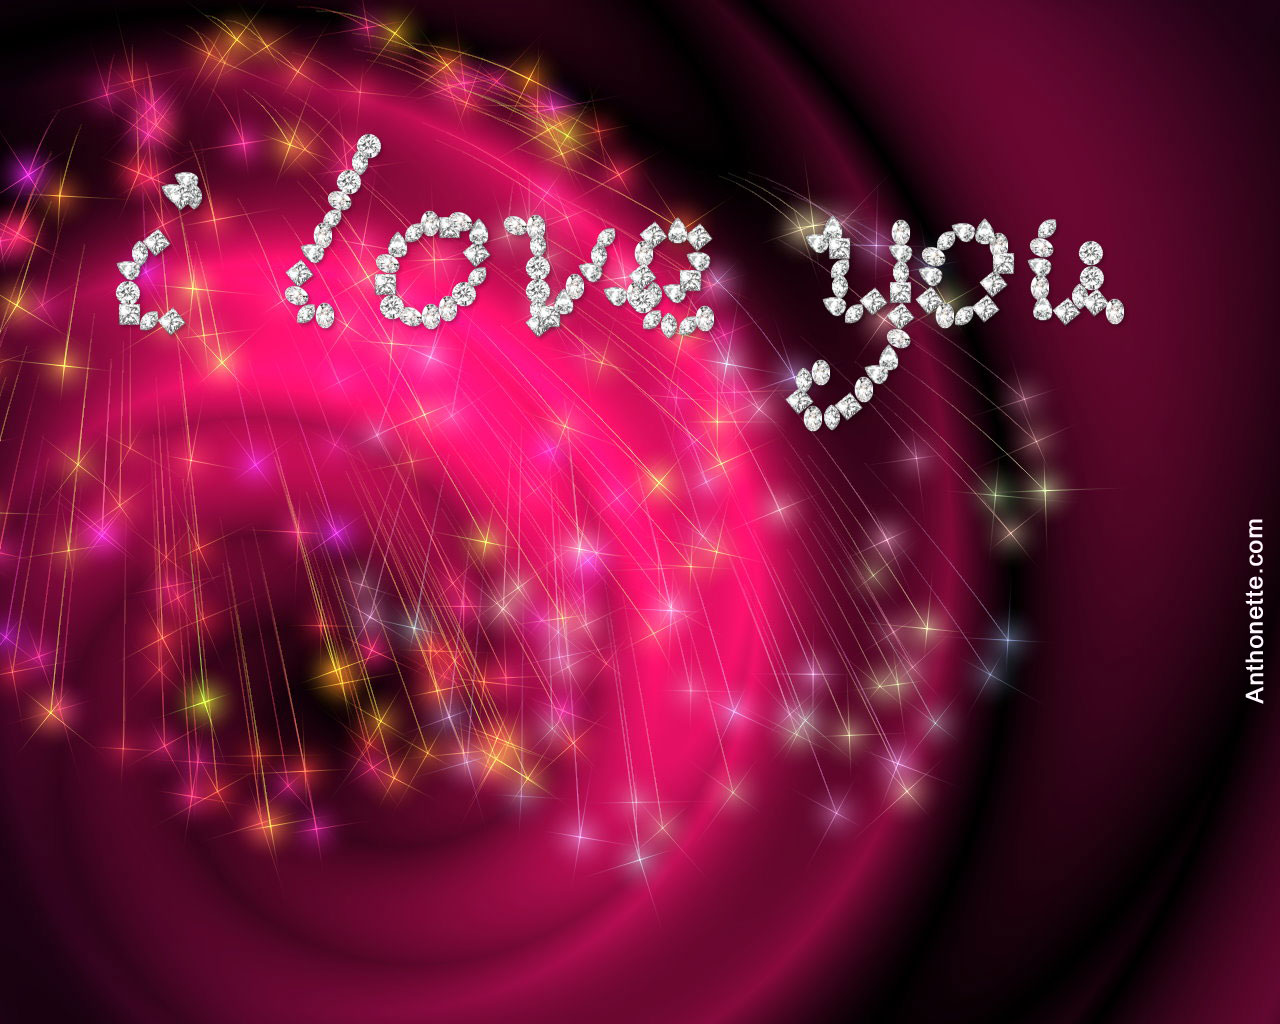 Free Download Wallpapers Hd Love You Wallpapers Hd Love You